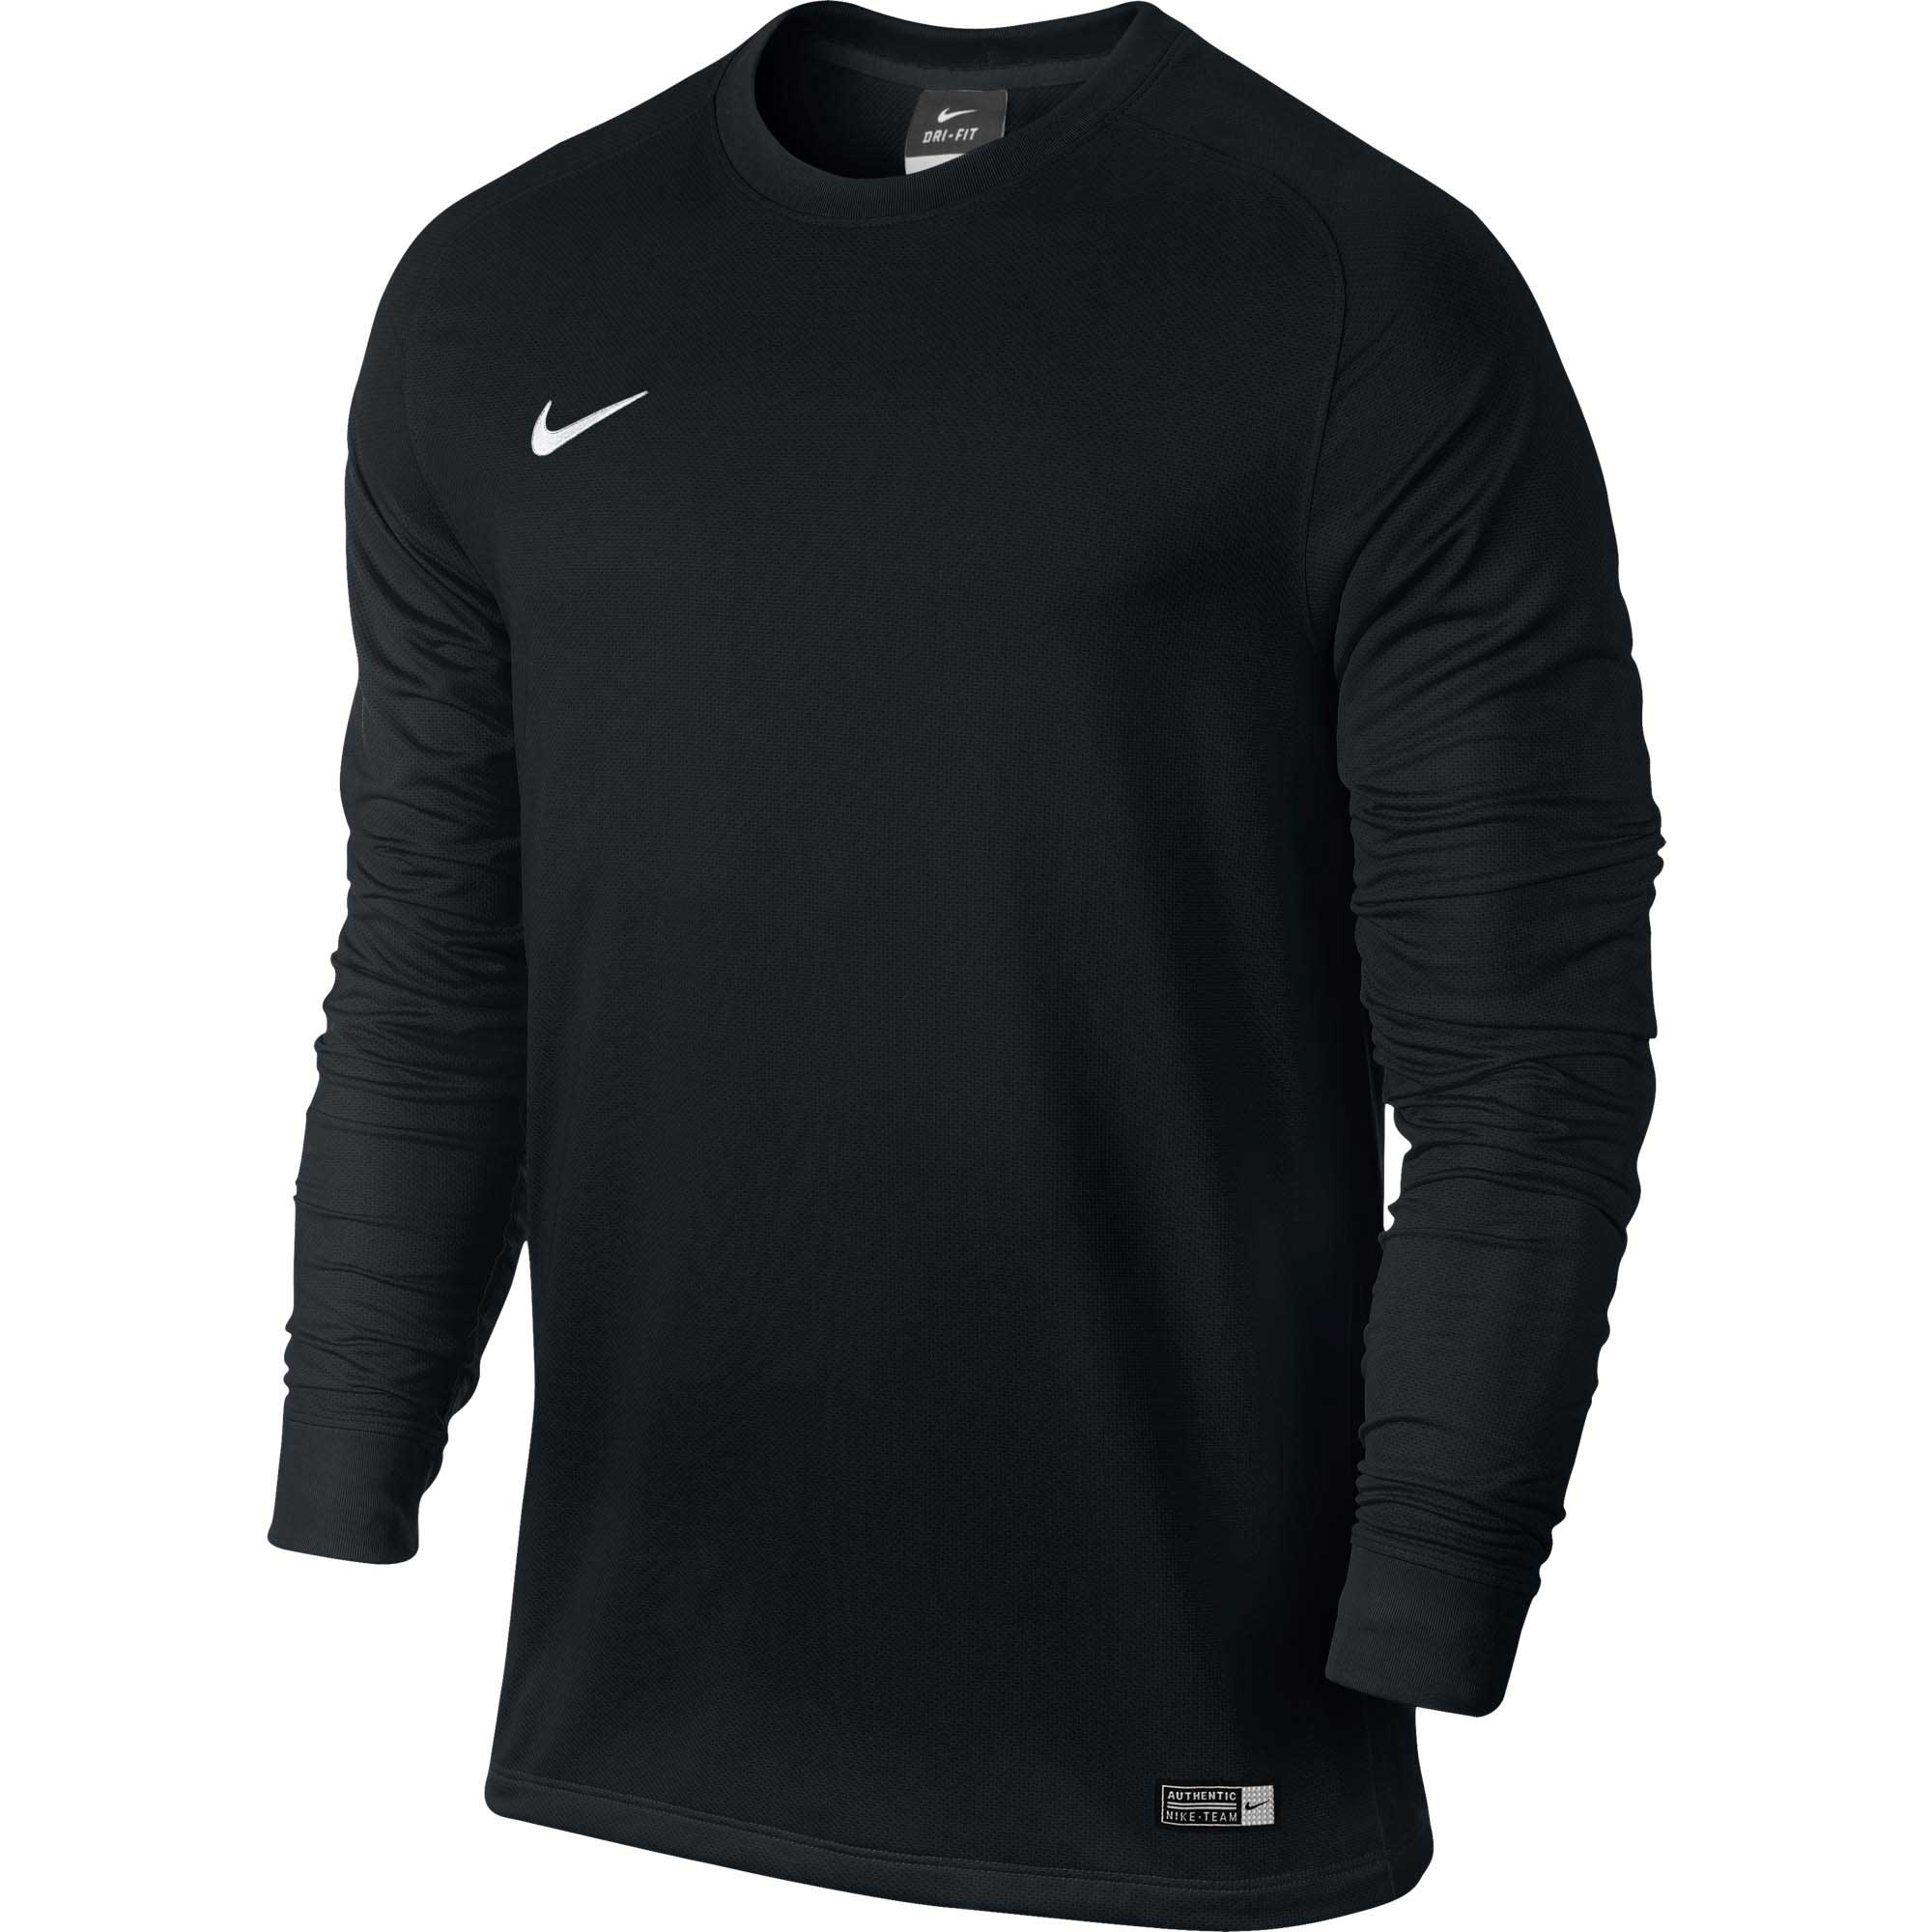 450533d72 Nike Park II Goalkeeper Jersey - Black Goalie Jerseys